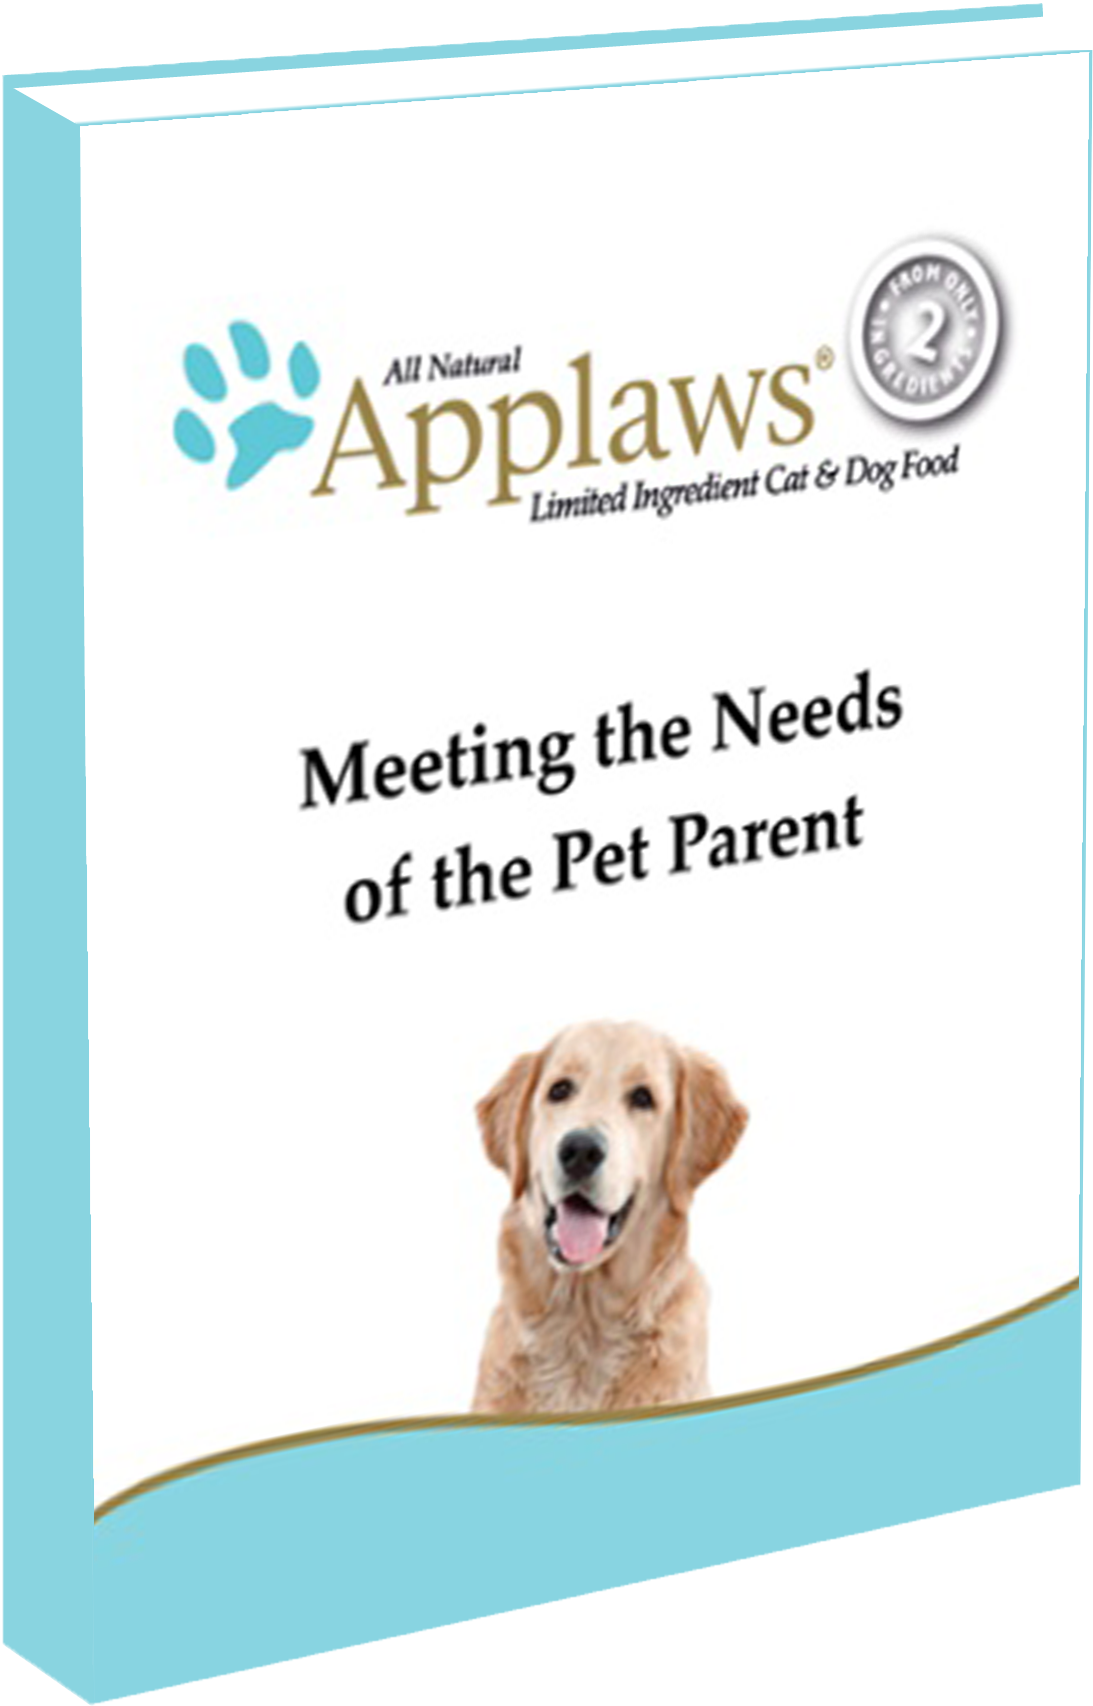 Pet_Parents_Needs_Ebook.png